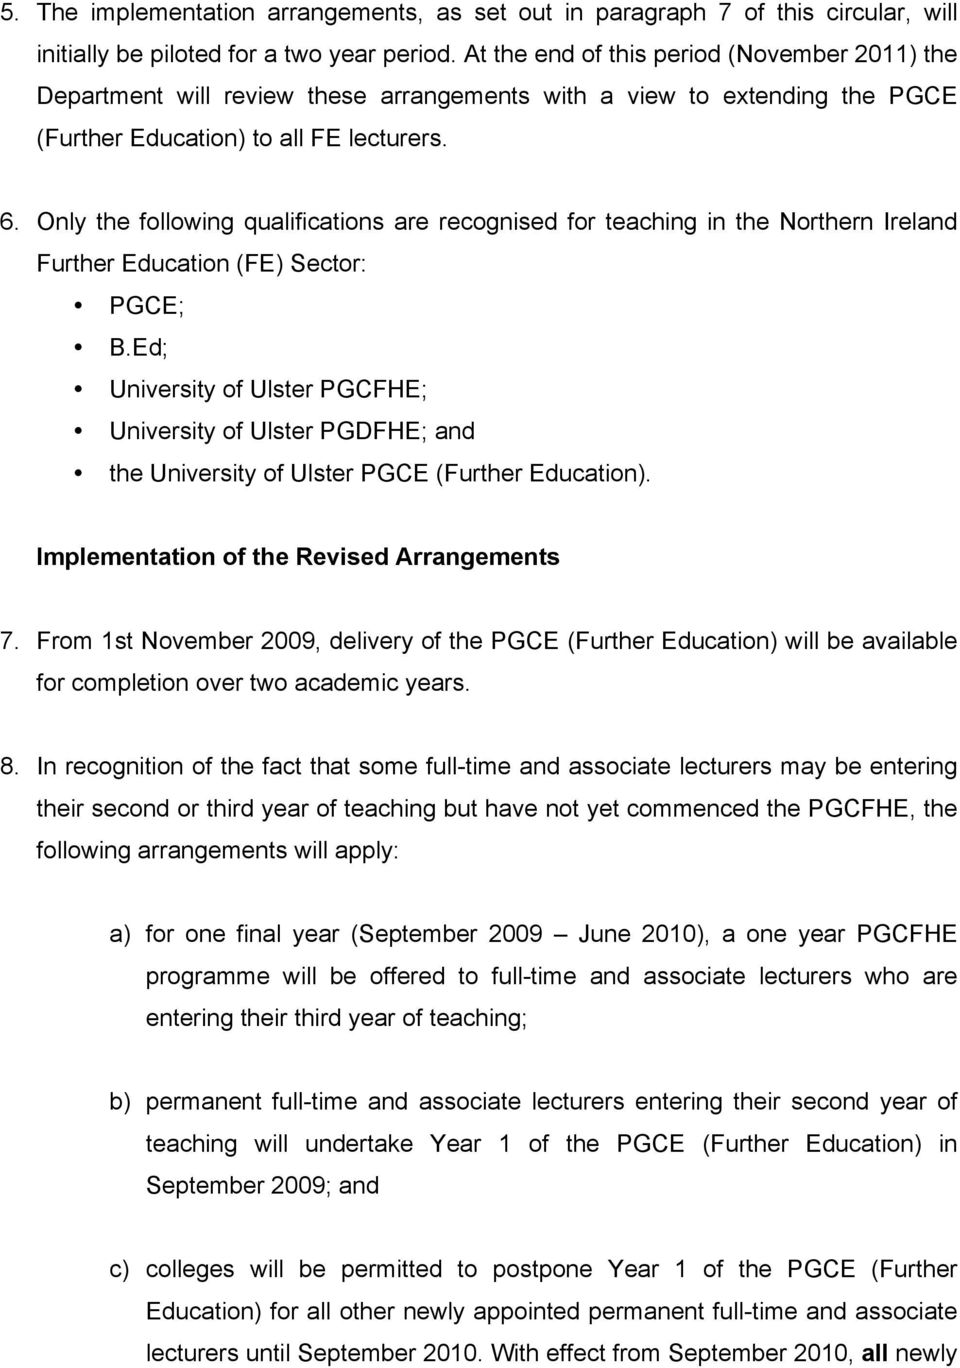 Only the following qualifications are recognised for teaching in the Northern Ireland Further Education (FE) Sector: PGCE; B.